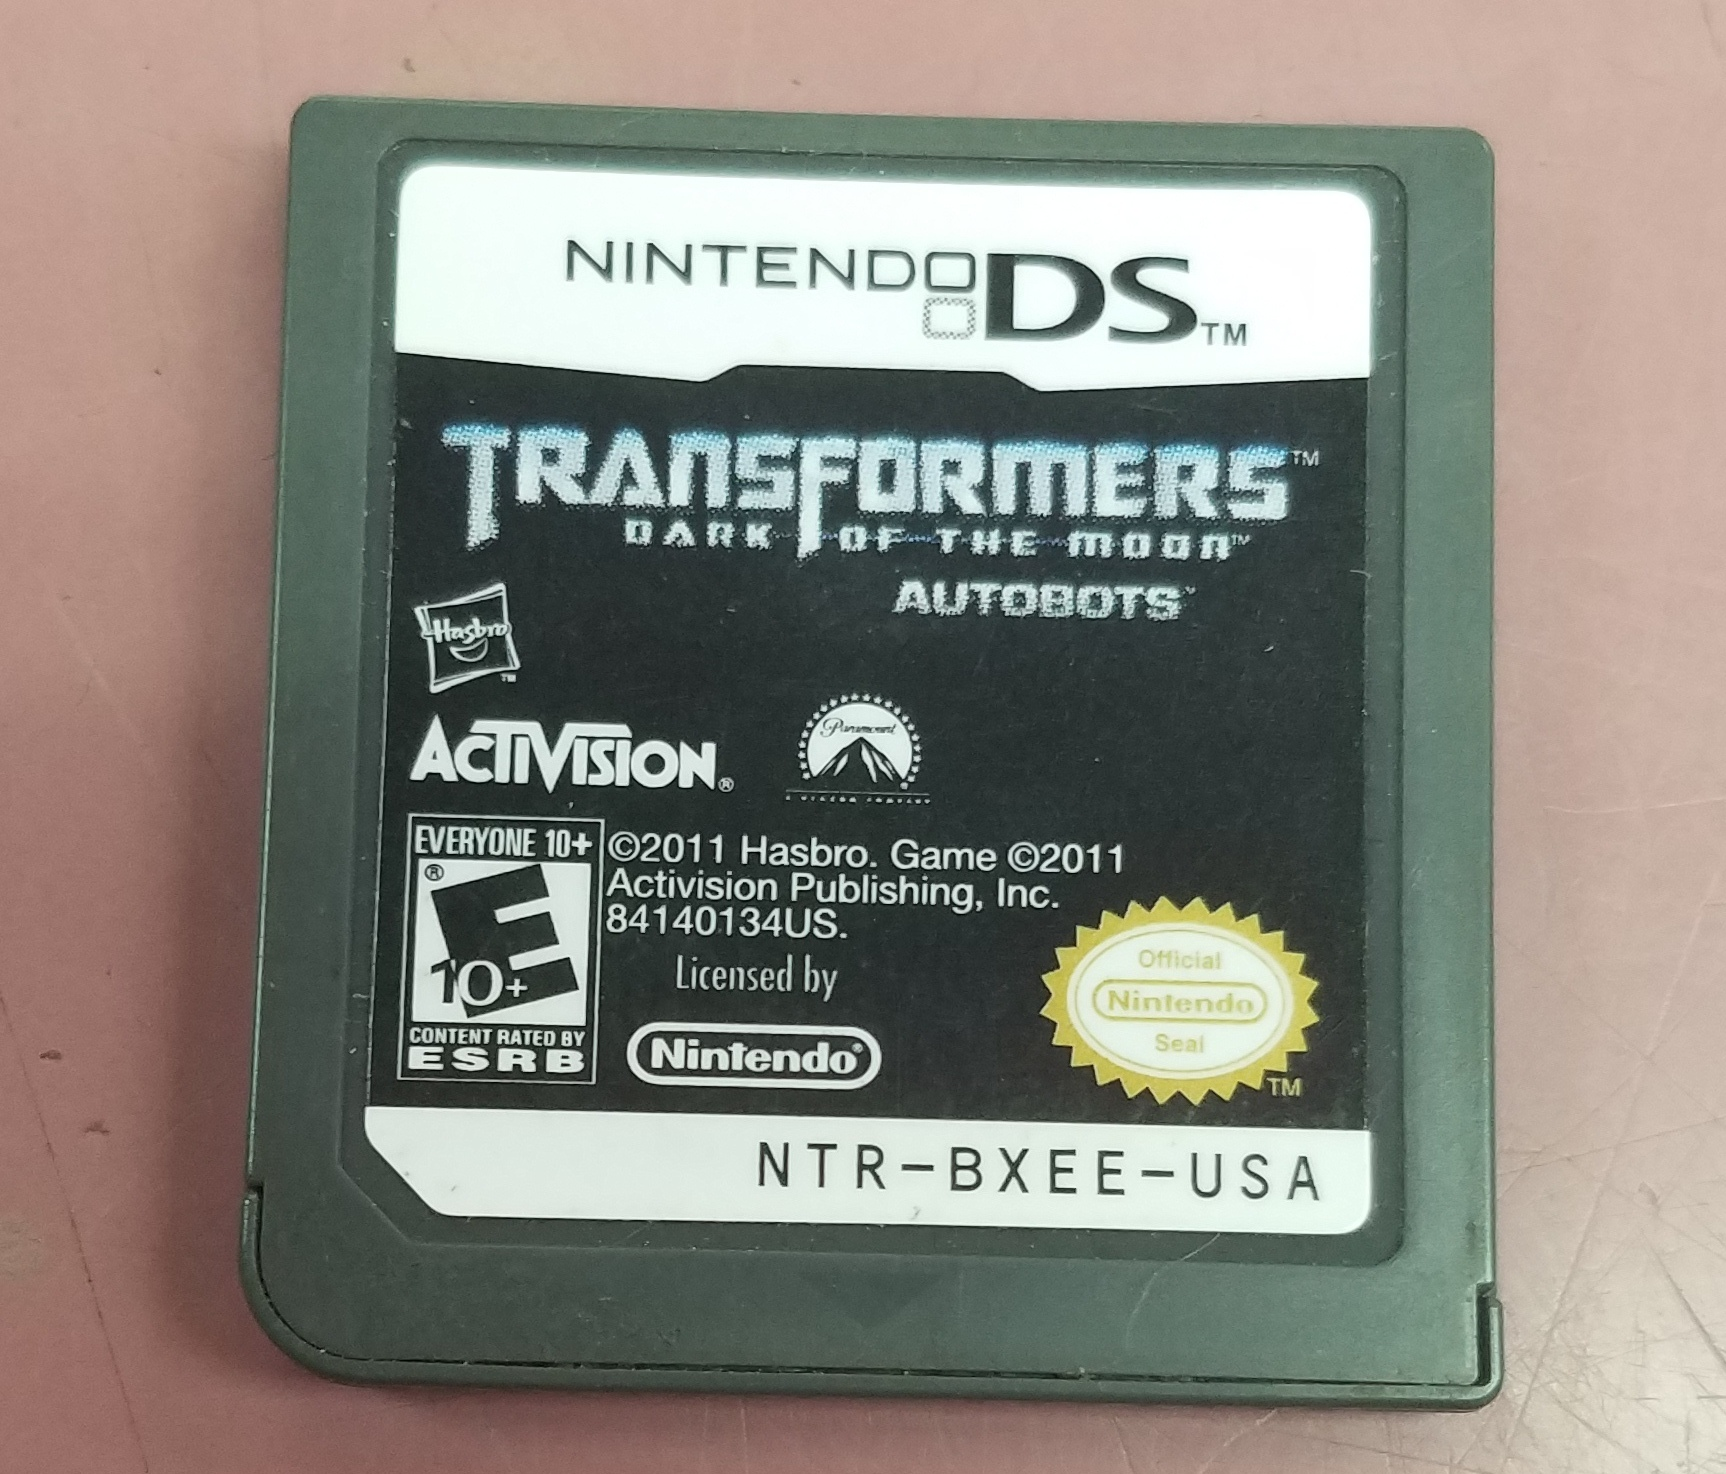 NINTENDO DS TRANSFORMERS DARK OF THE MOON